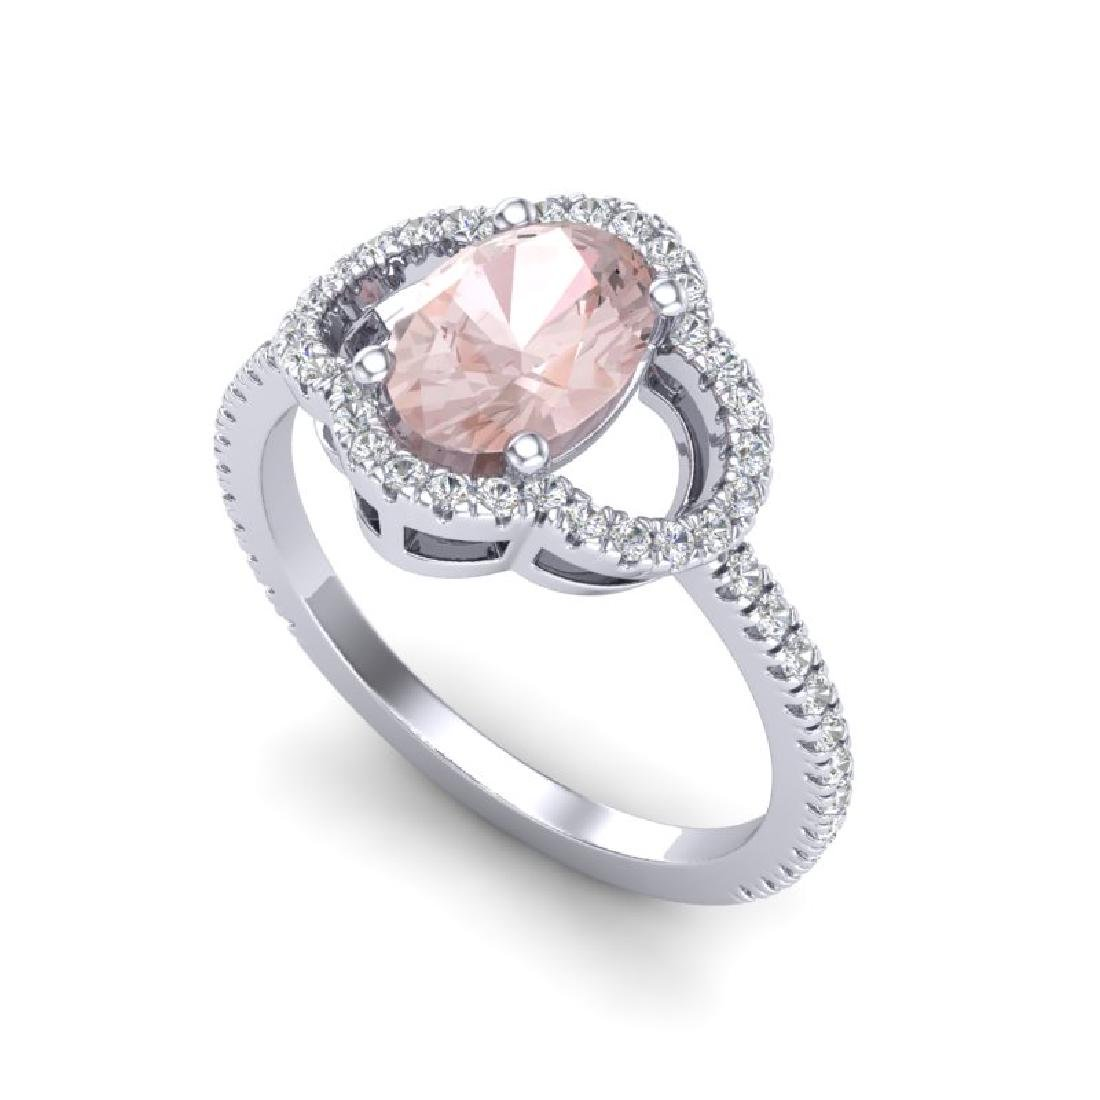 1.75 CTW Morganite & Micro Pave VS/SI Diamond Ring 10K - 2